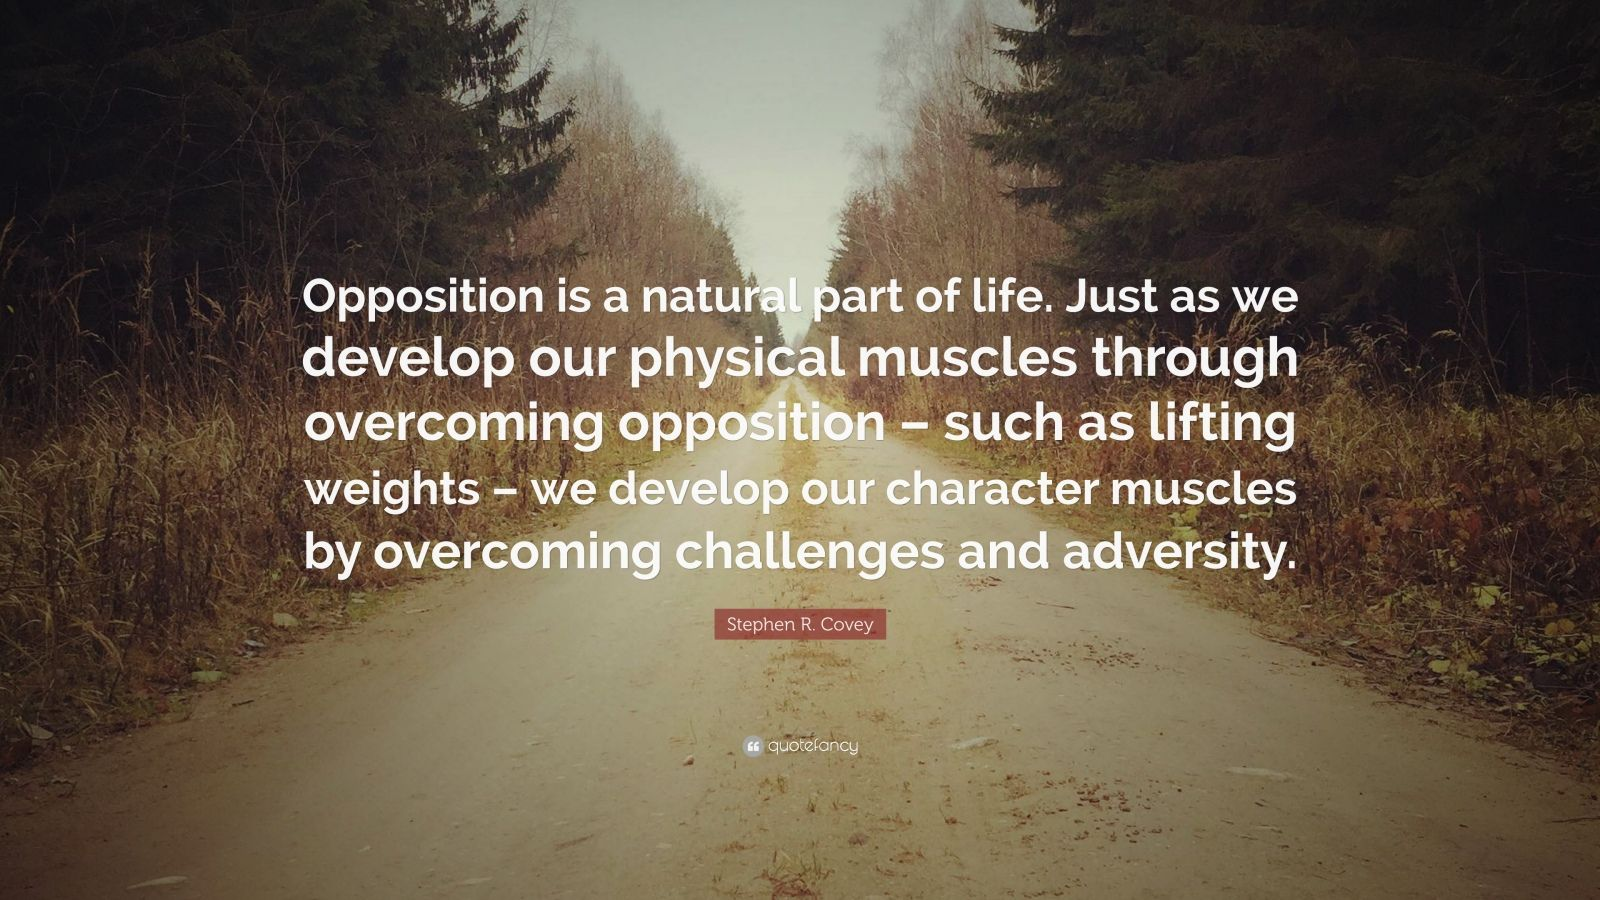 """Stephen R. Covey Quote: """"Opposition is a natural part of life. Just as we develop our physical muscles through overcoming opposition – such as lifting weights – we develop our character muscles by overcoming challenges and adversity."""""""